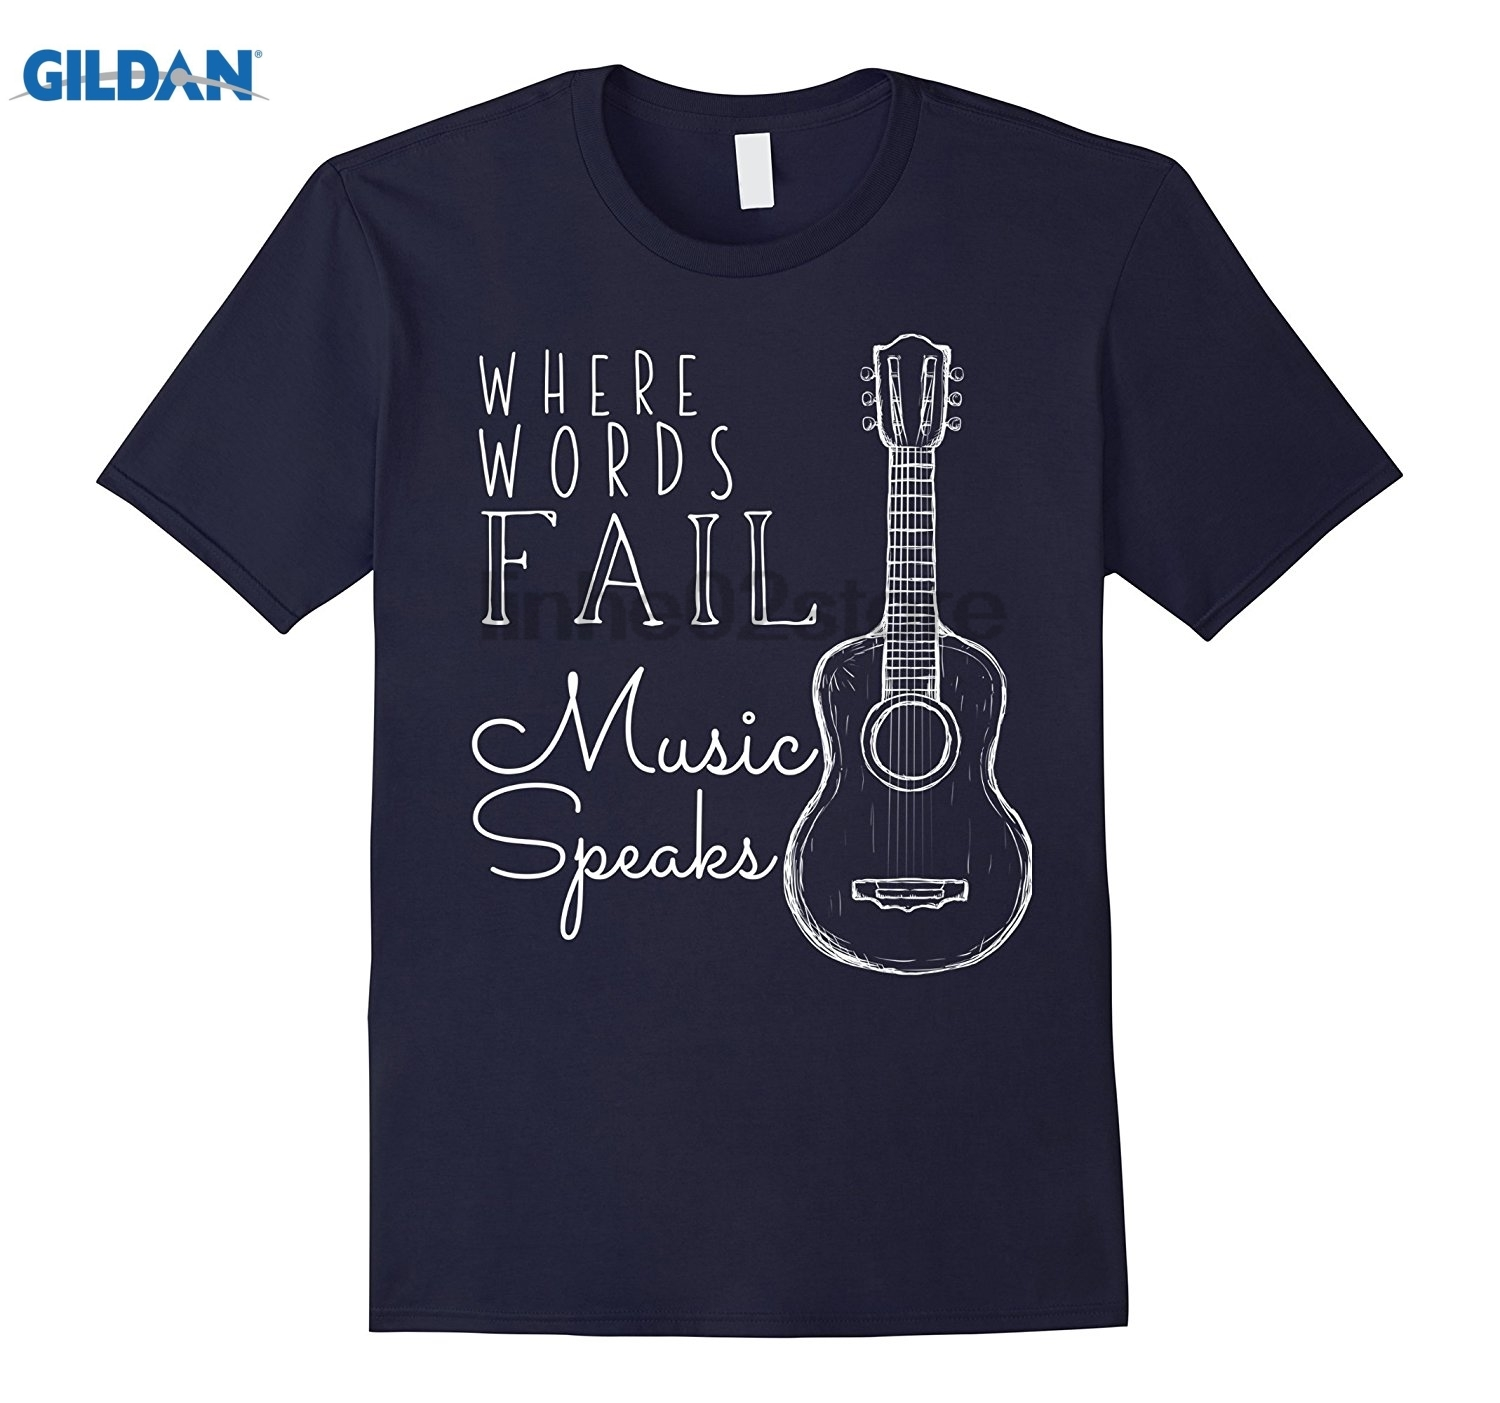 GILDAN Where Words Fail Music Speaks Custom Printed Graphic T-Shirt glasses Womens T-shirt